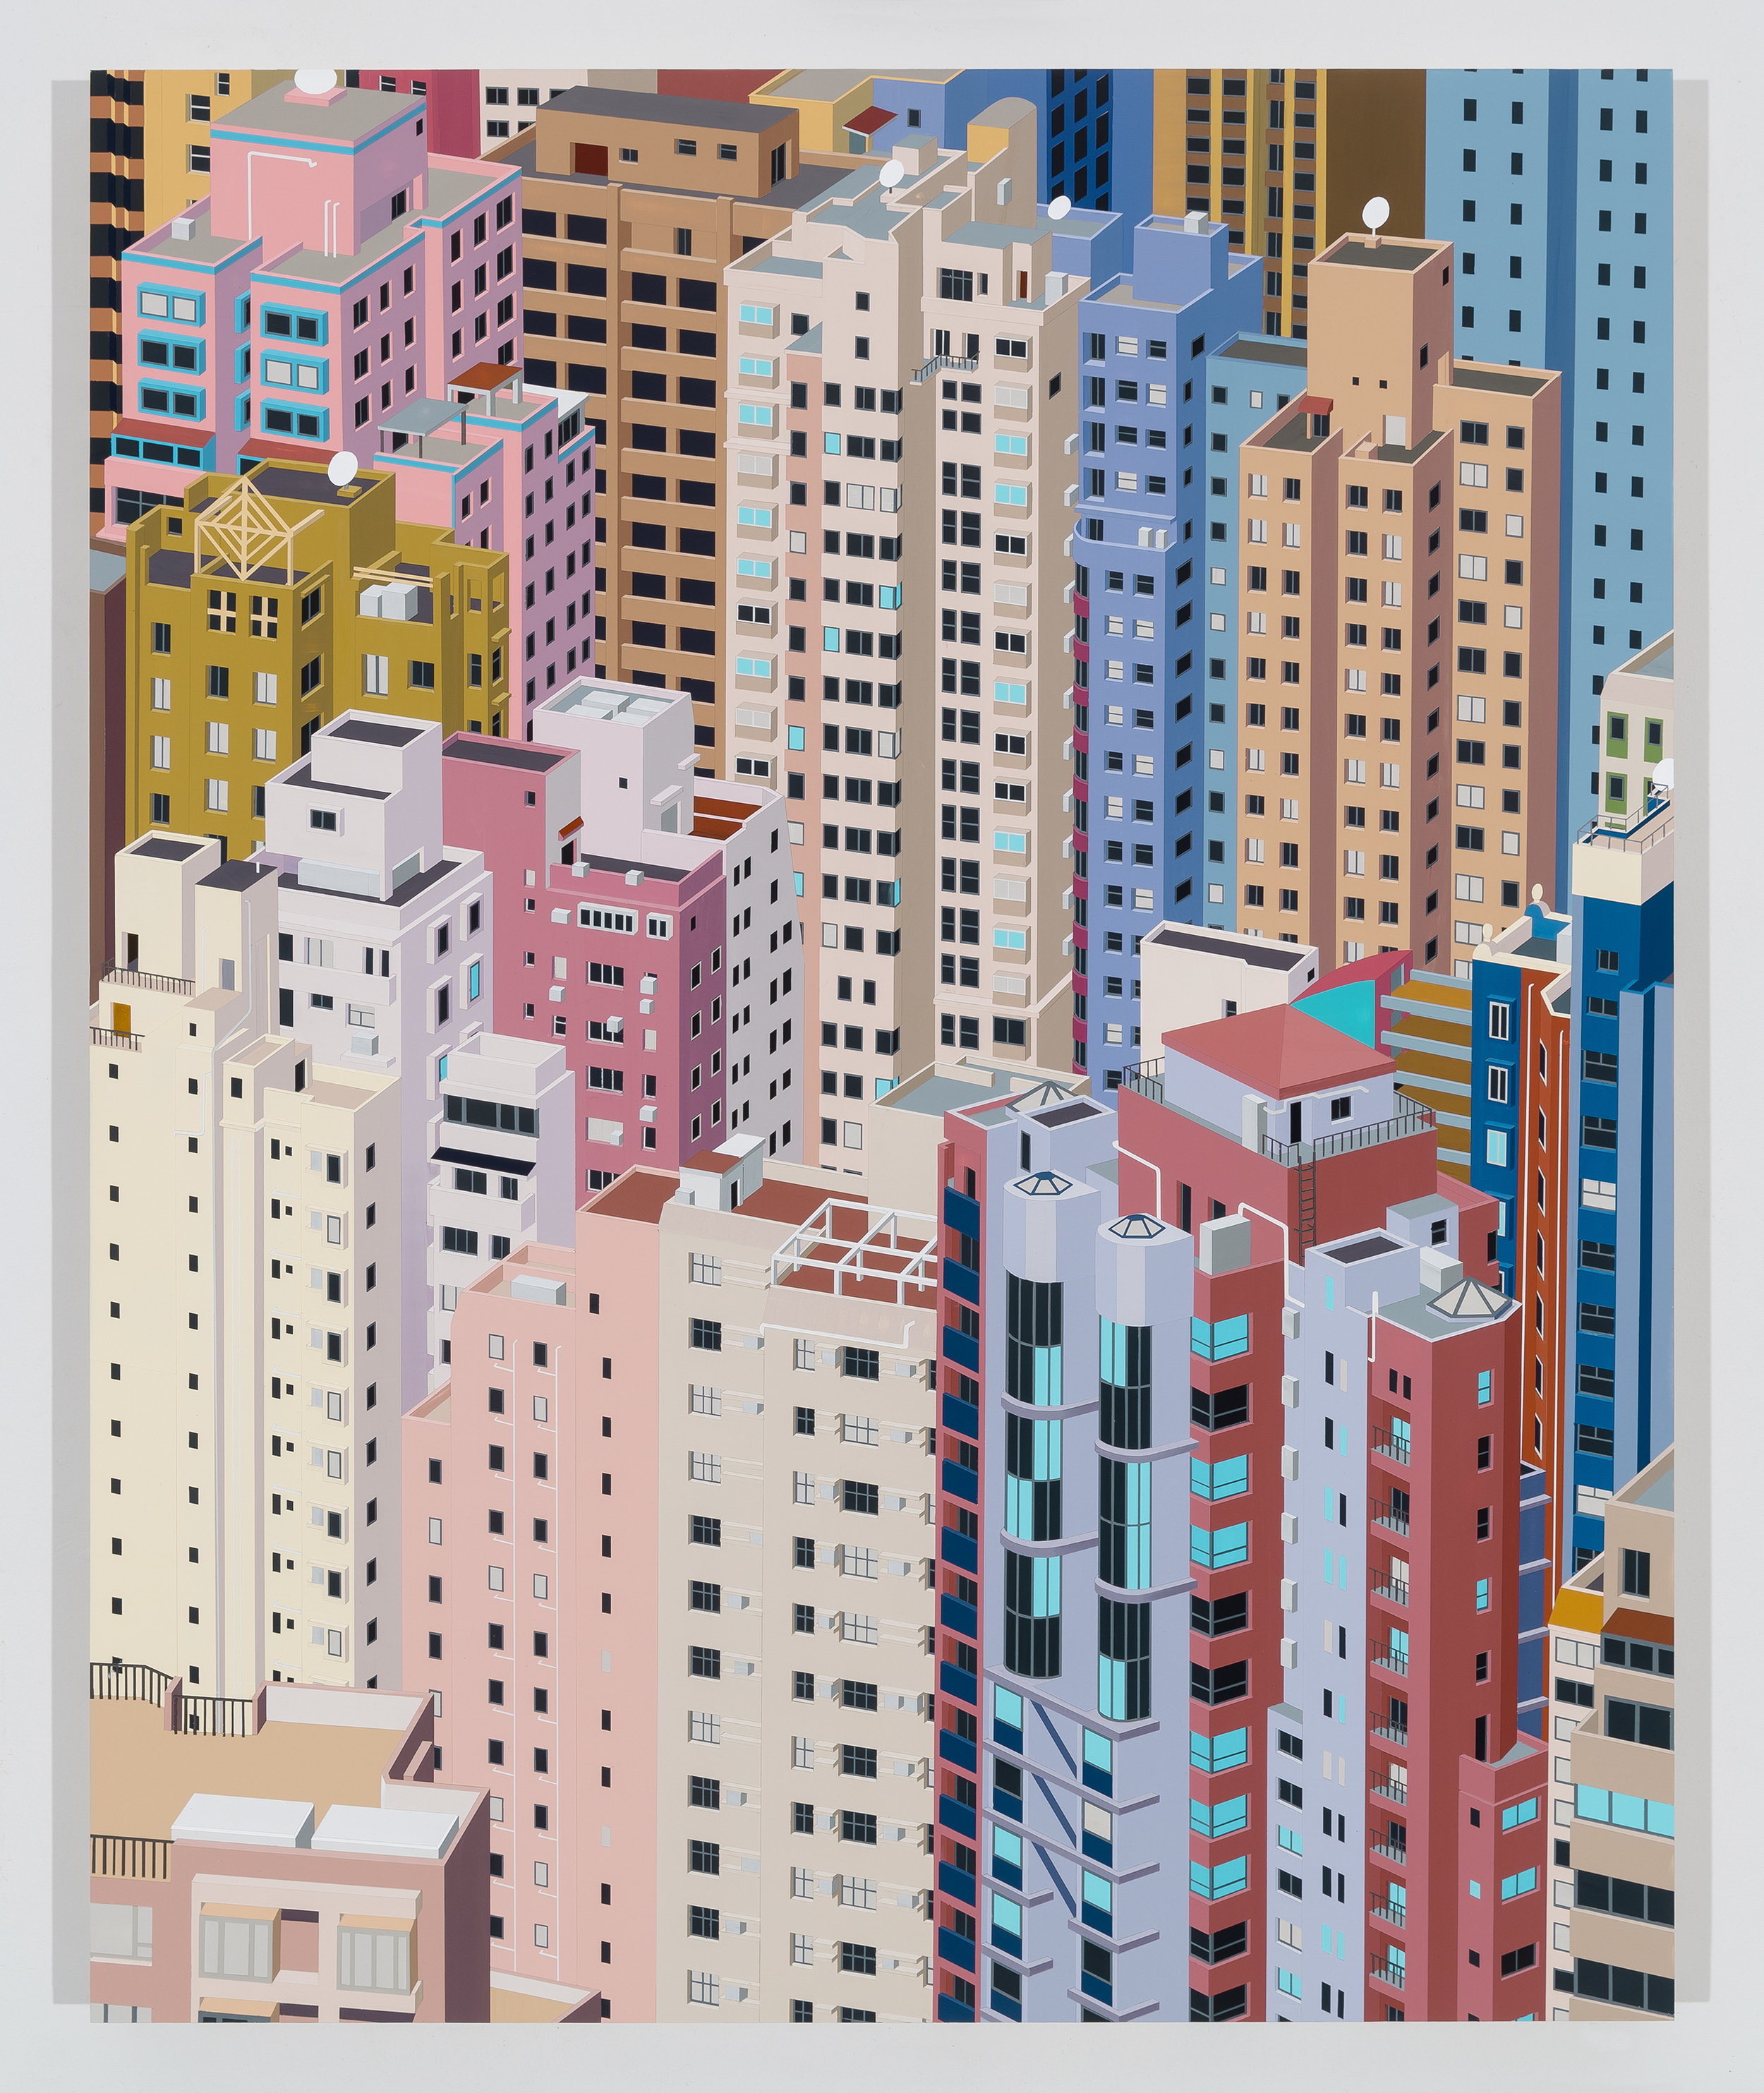 Western District, Hong Kong, 2016. Acrylic on Dibond, 37 x 30""